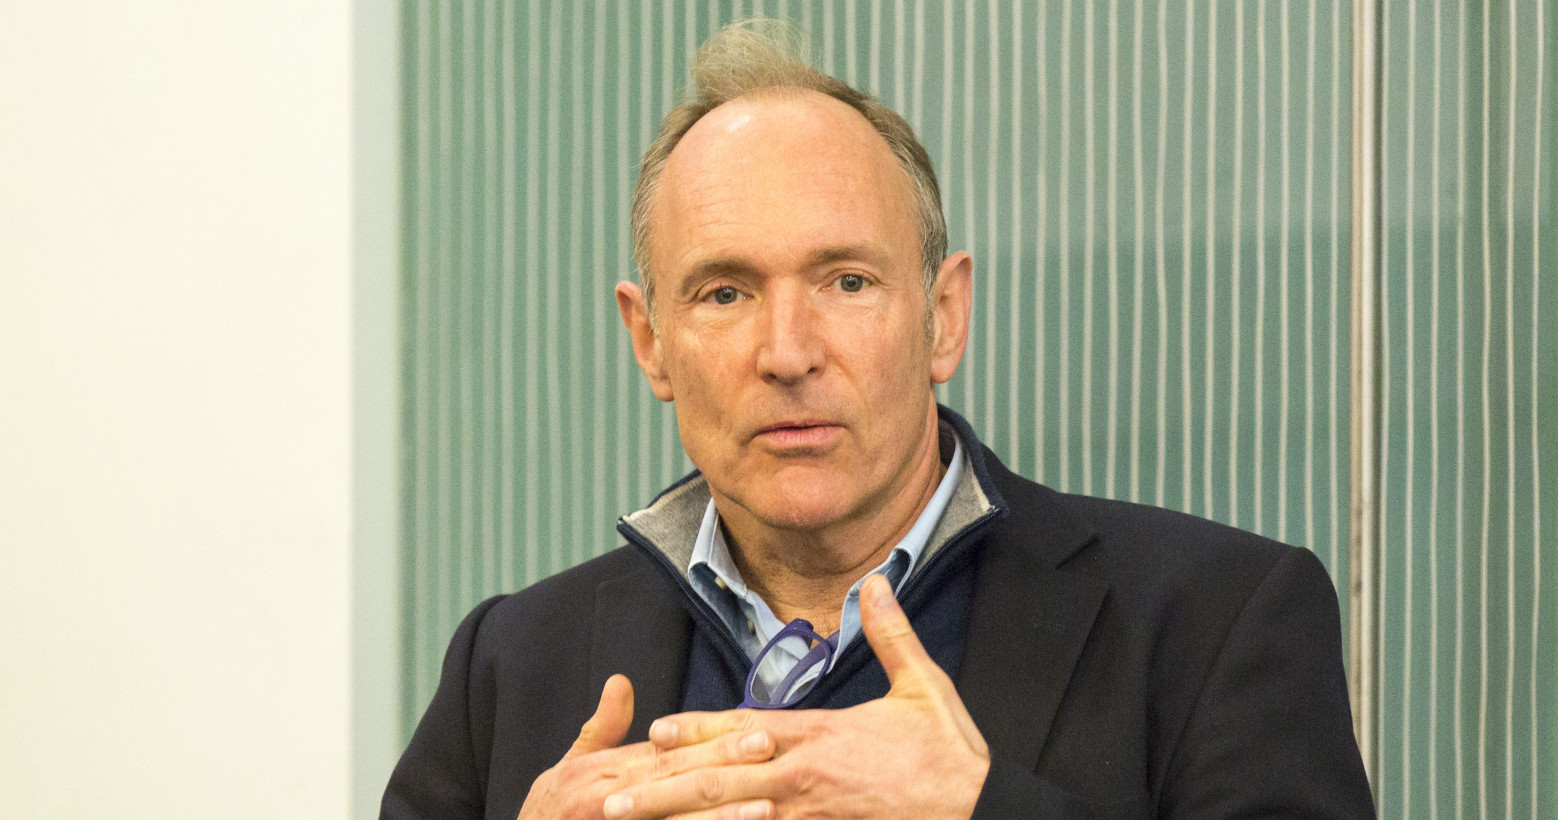 Inventor of the web wants to give people control over their data again